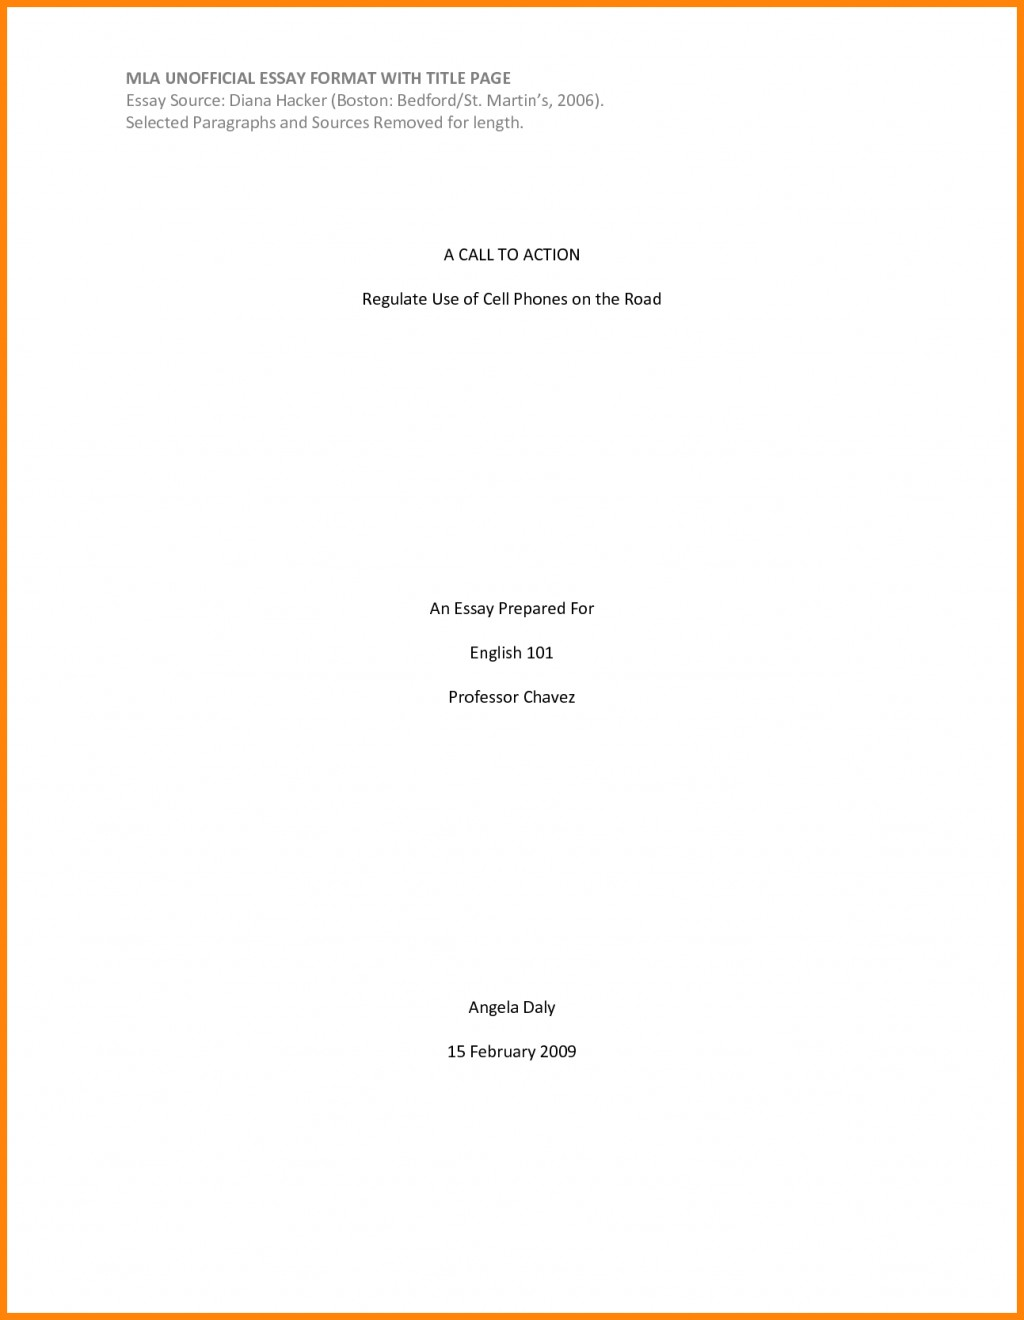 002 Research Paper Cover Page Example For Essay 8 How To Make Marvelous A Mla Large